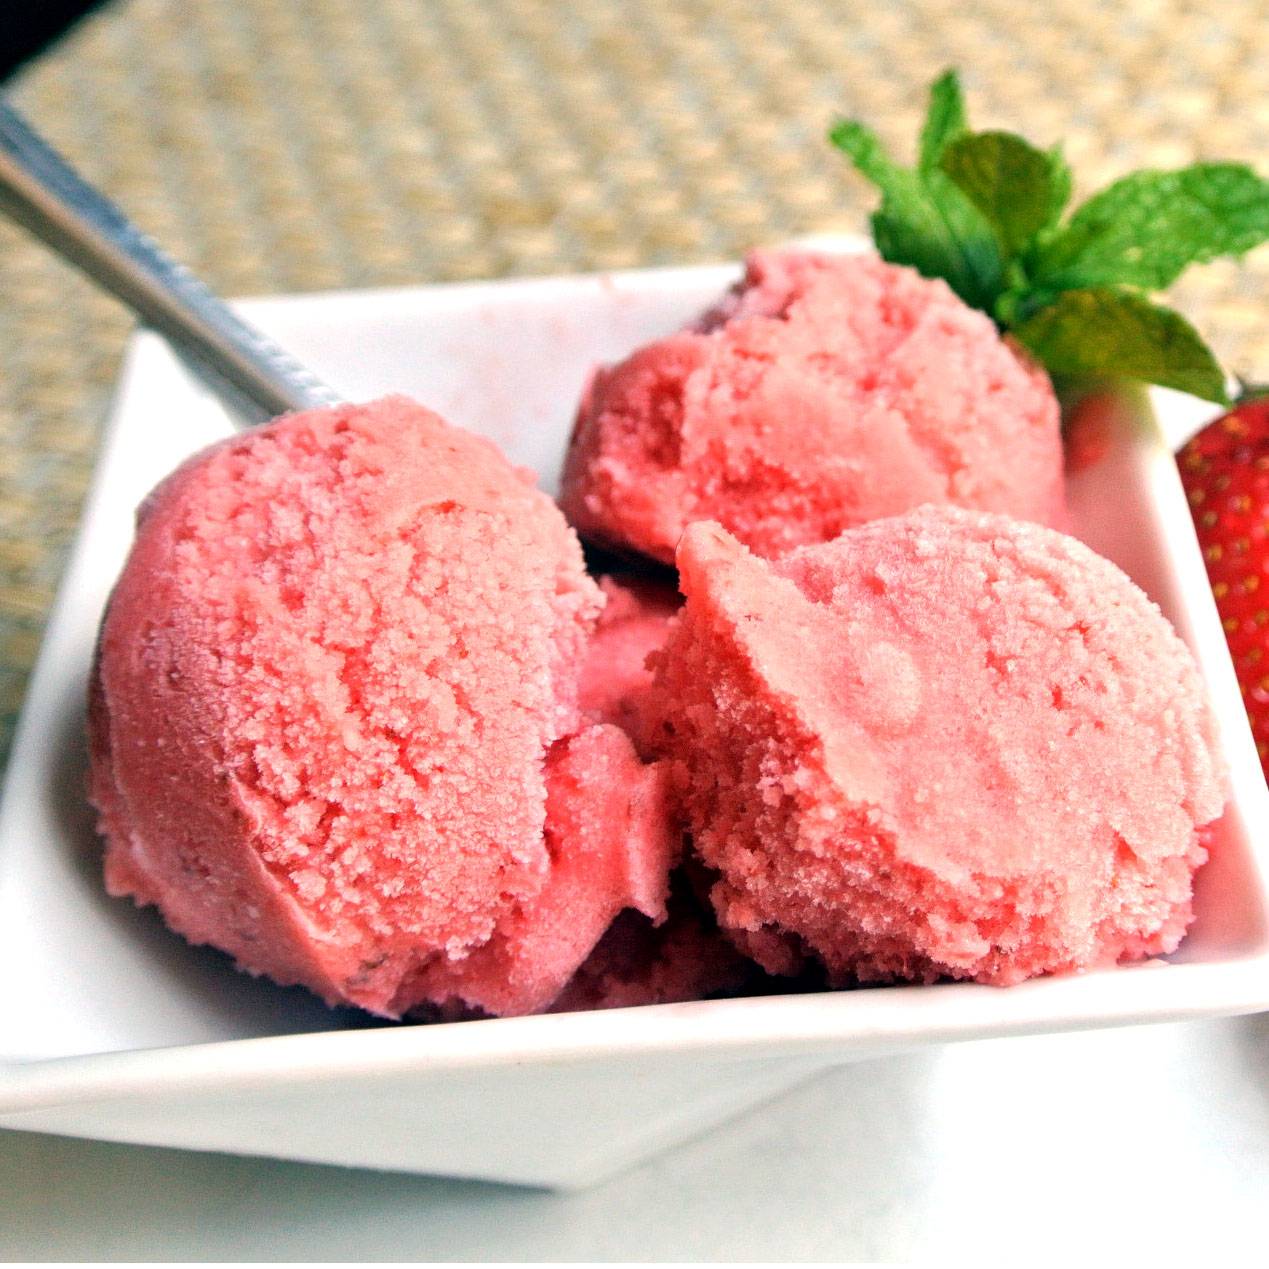 Mom, What's For Dinner?: Vegan Strawberry Sorbet